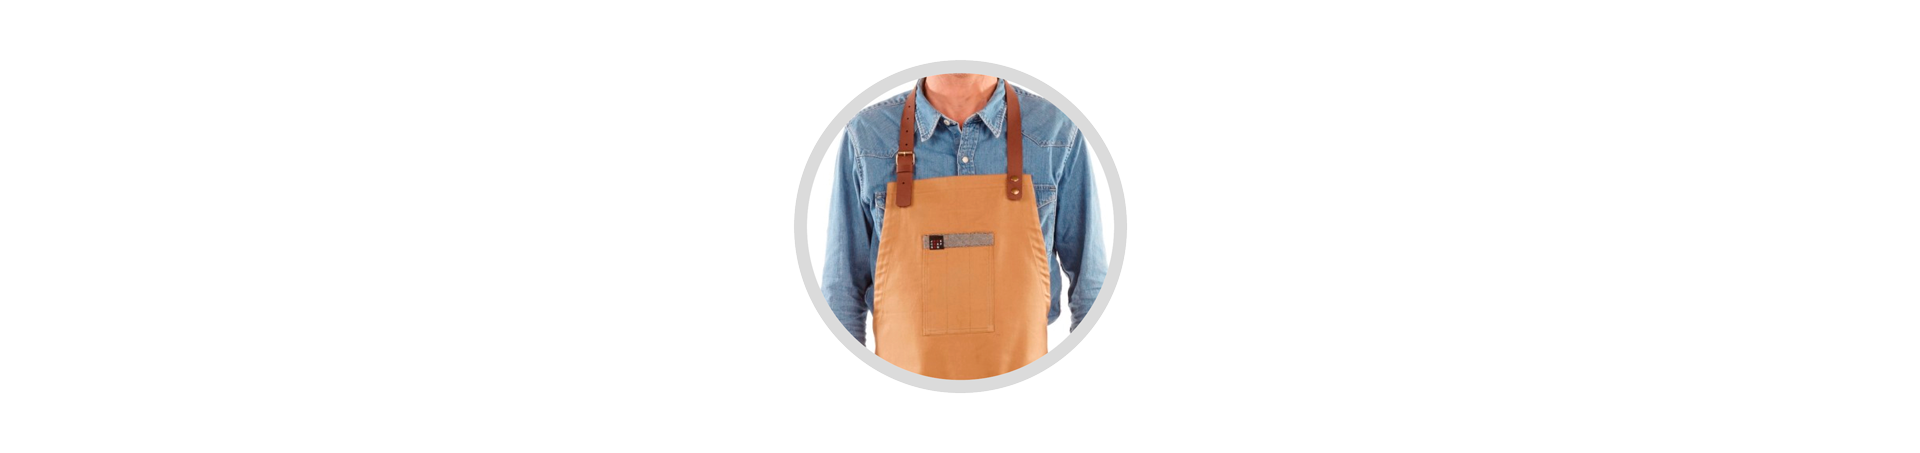 Leather strap apron